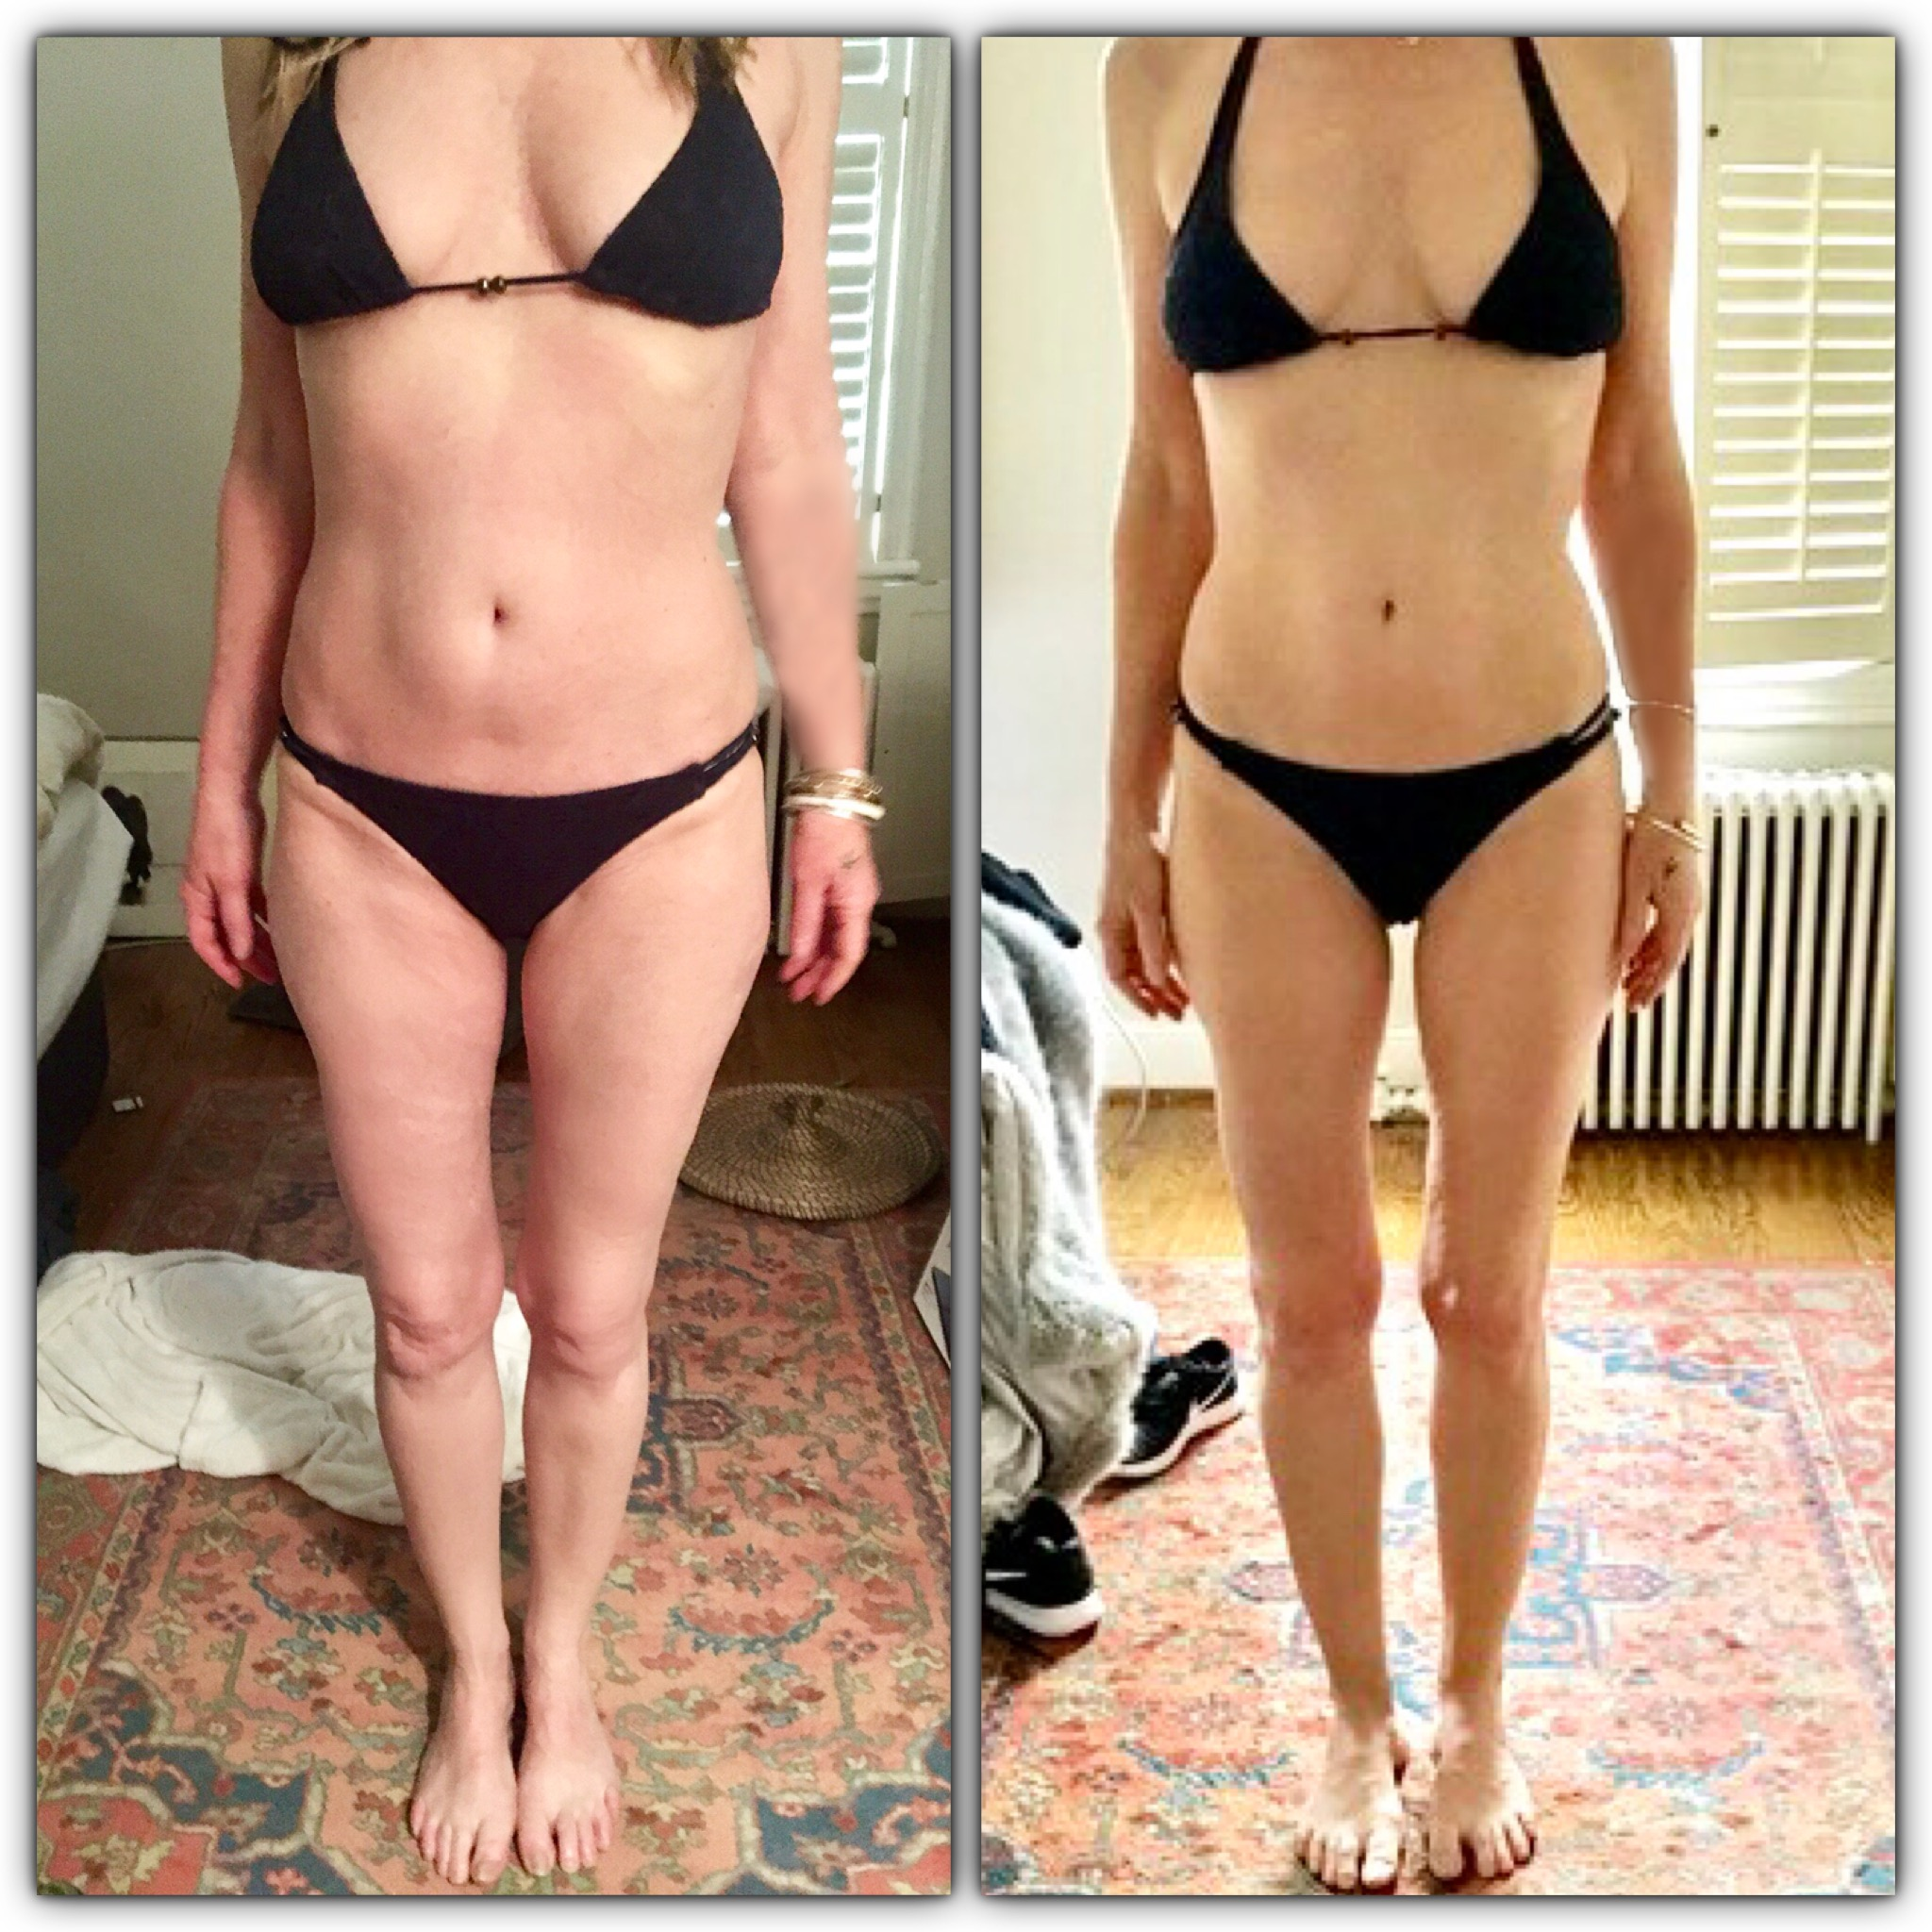 10 lbs Weight Loss Transformation - Newtrition New You @ newtritionny.com